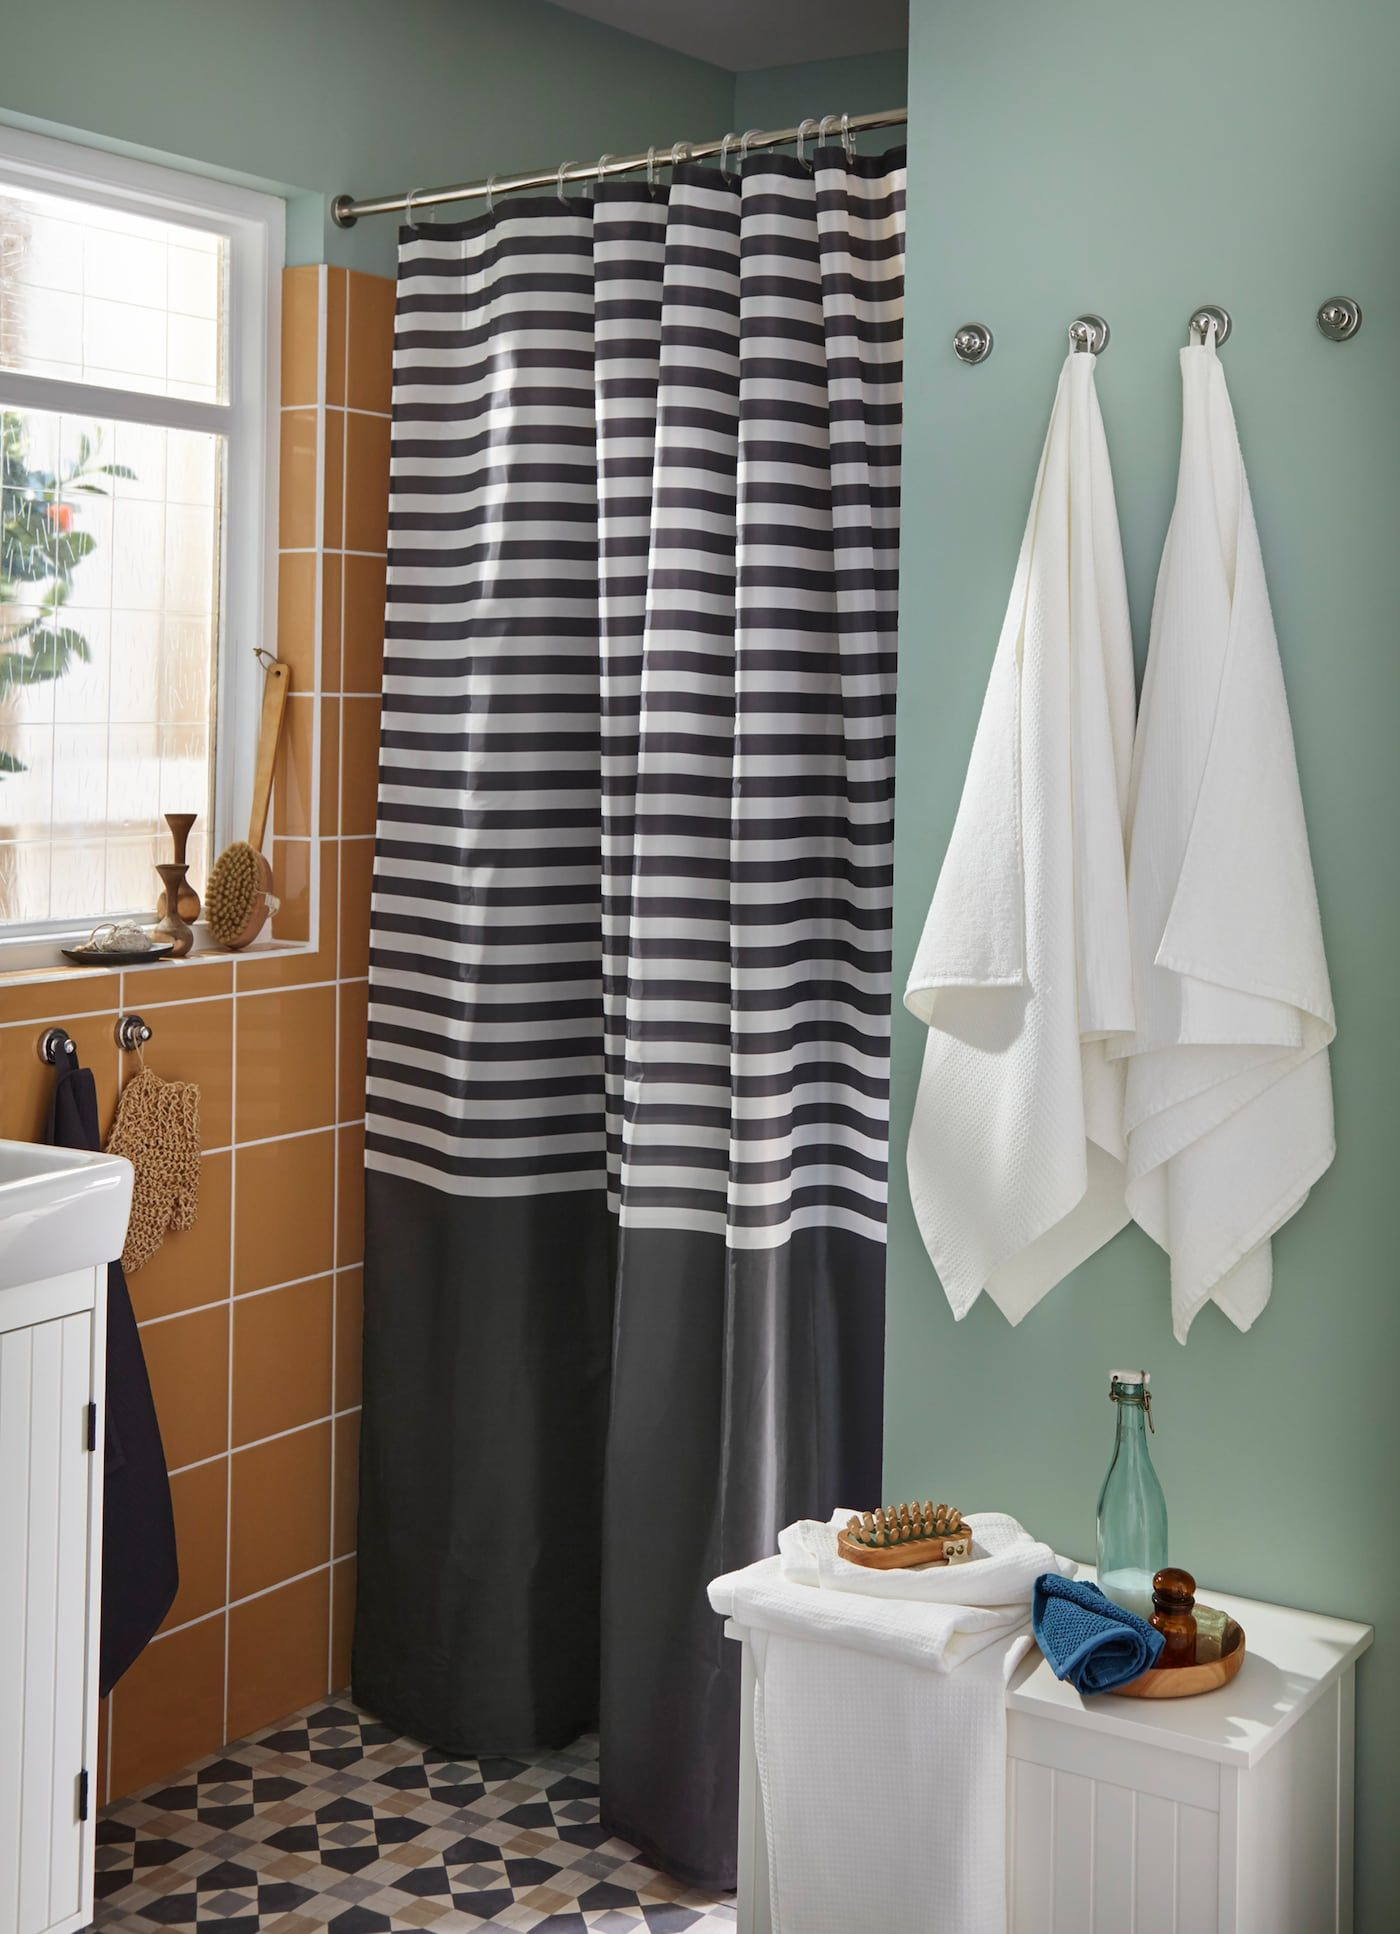 Stylish Bathroom Storage Bathroom Storage Ideas Small Bathroom